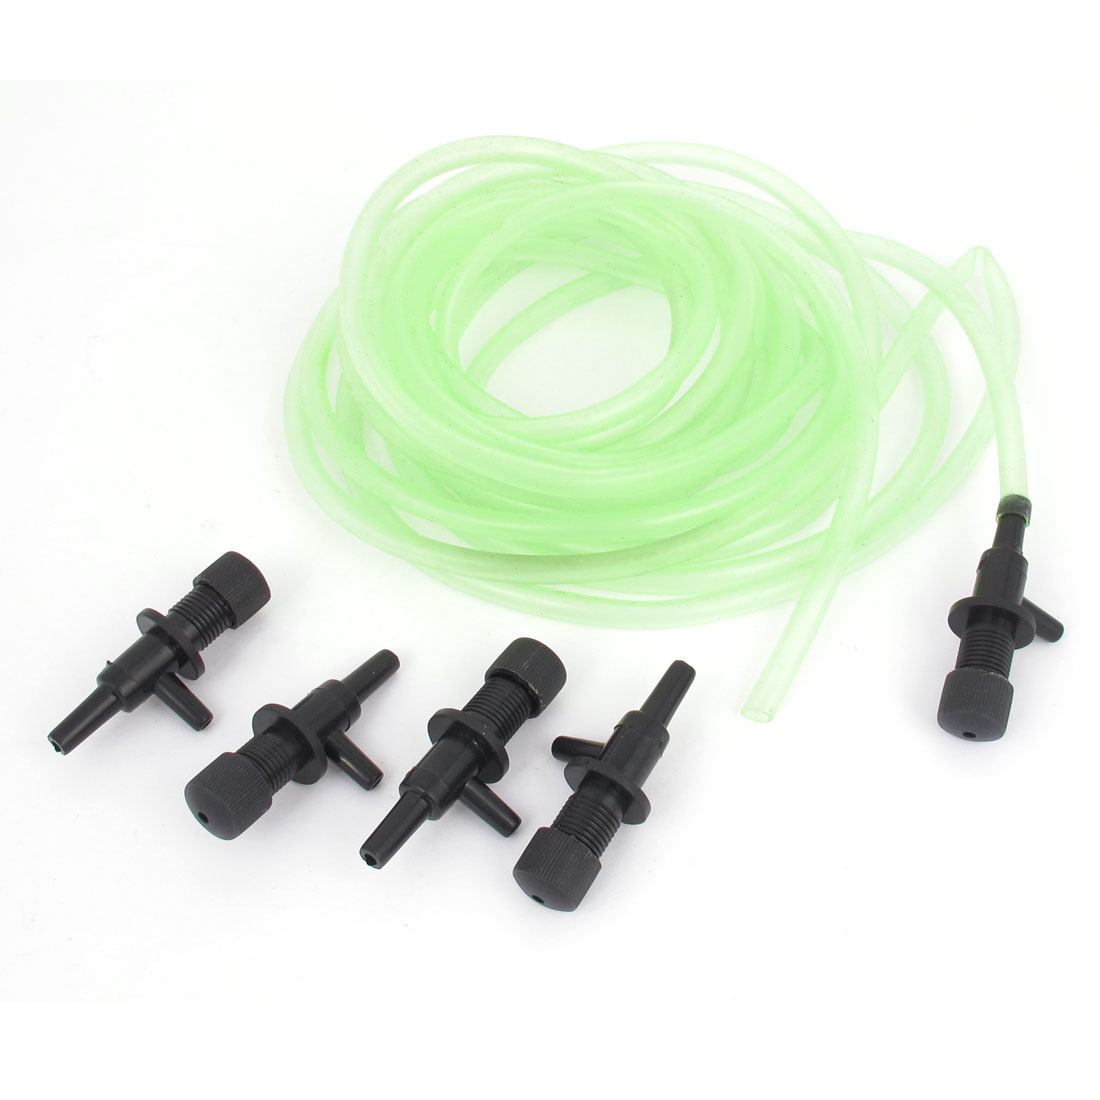 5.5m Aquarium Green Soft Plastic Air Tube + Control Valve 6 in 1 Set